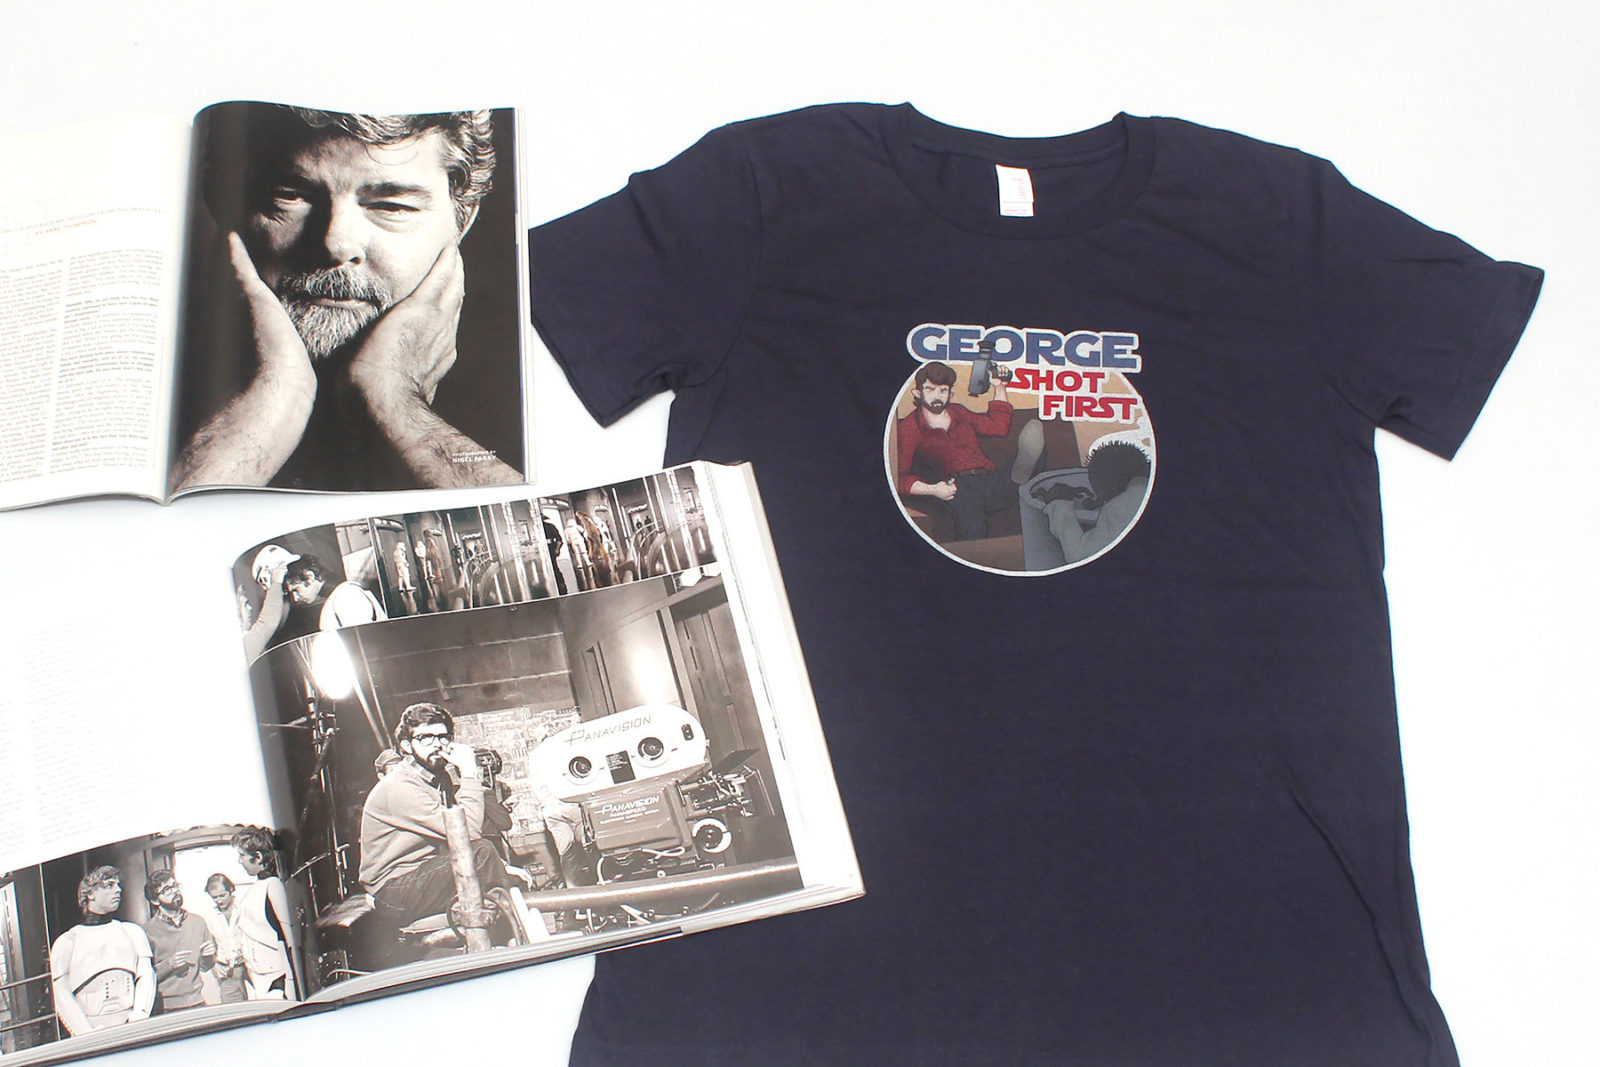 Review – George Shot First t-shirts